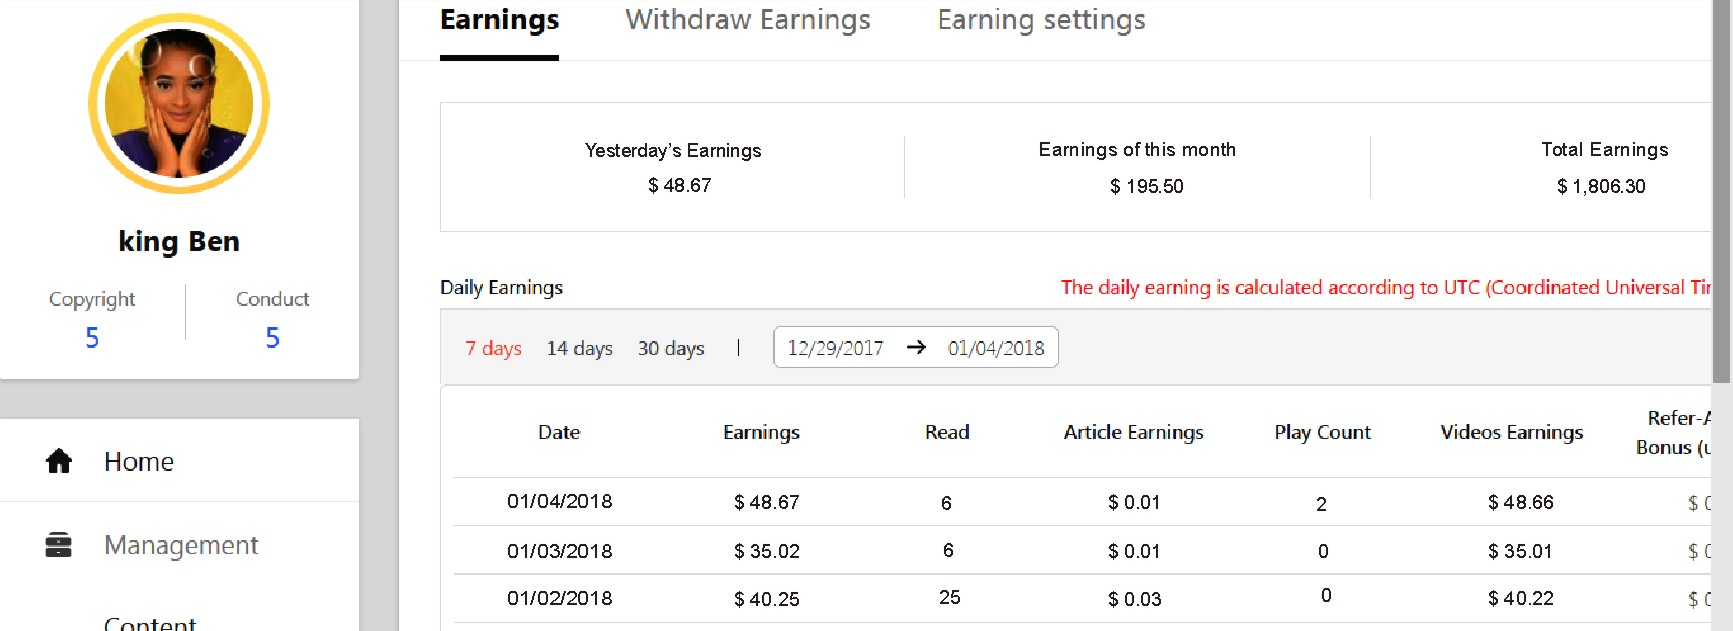 teach you how to make at least $40 everyday, doing videos upload for just 20 minutes daily